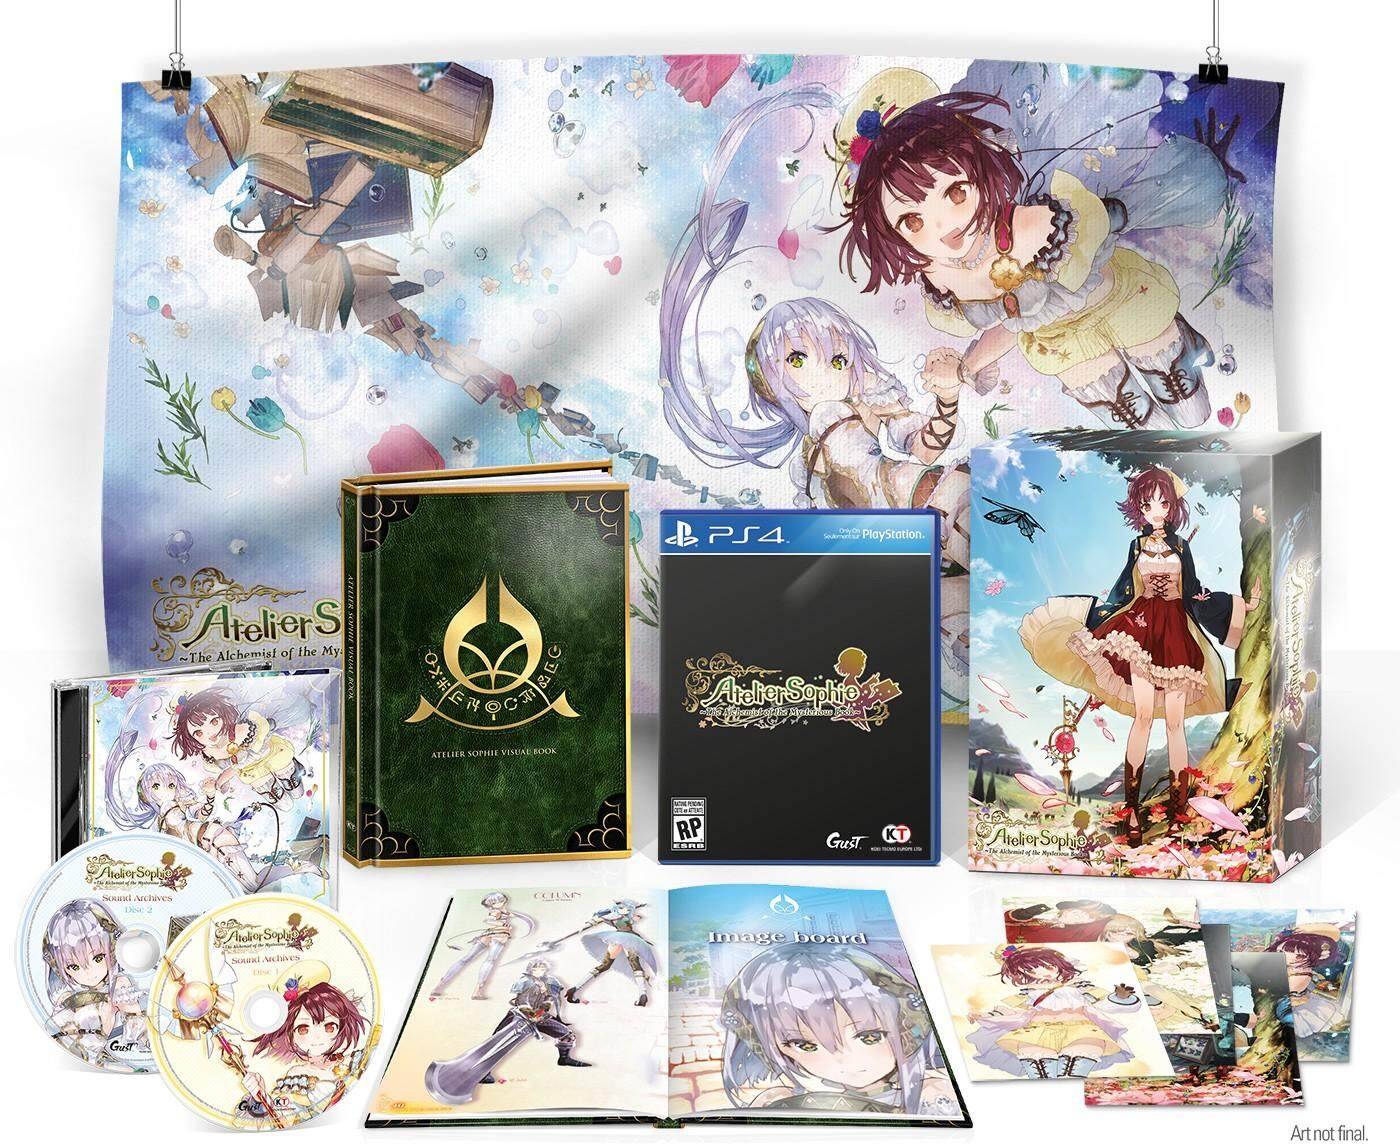 PS4 ATELIER SOPHIE: THE ALCHEMIST OF THE MYSTERIOUS BOOK LIMITED EDITION (US)